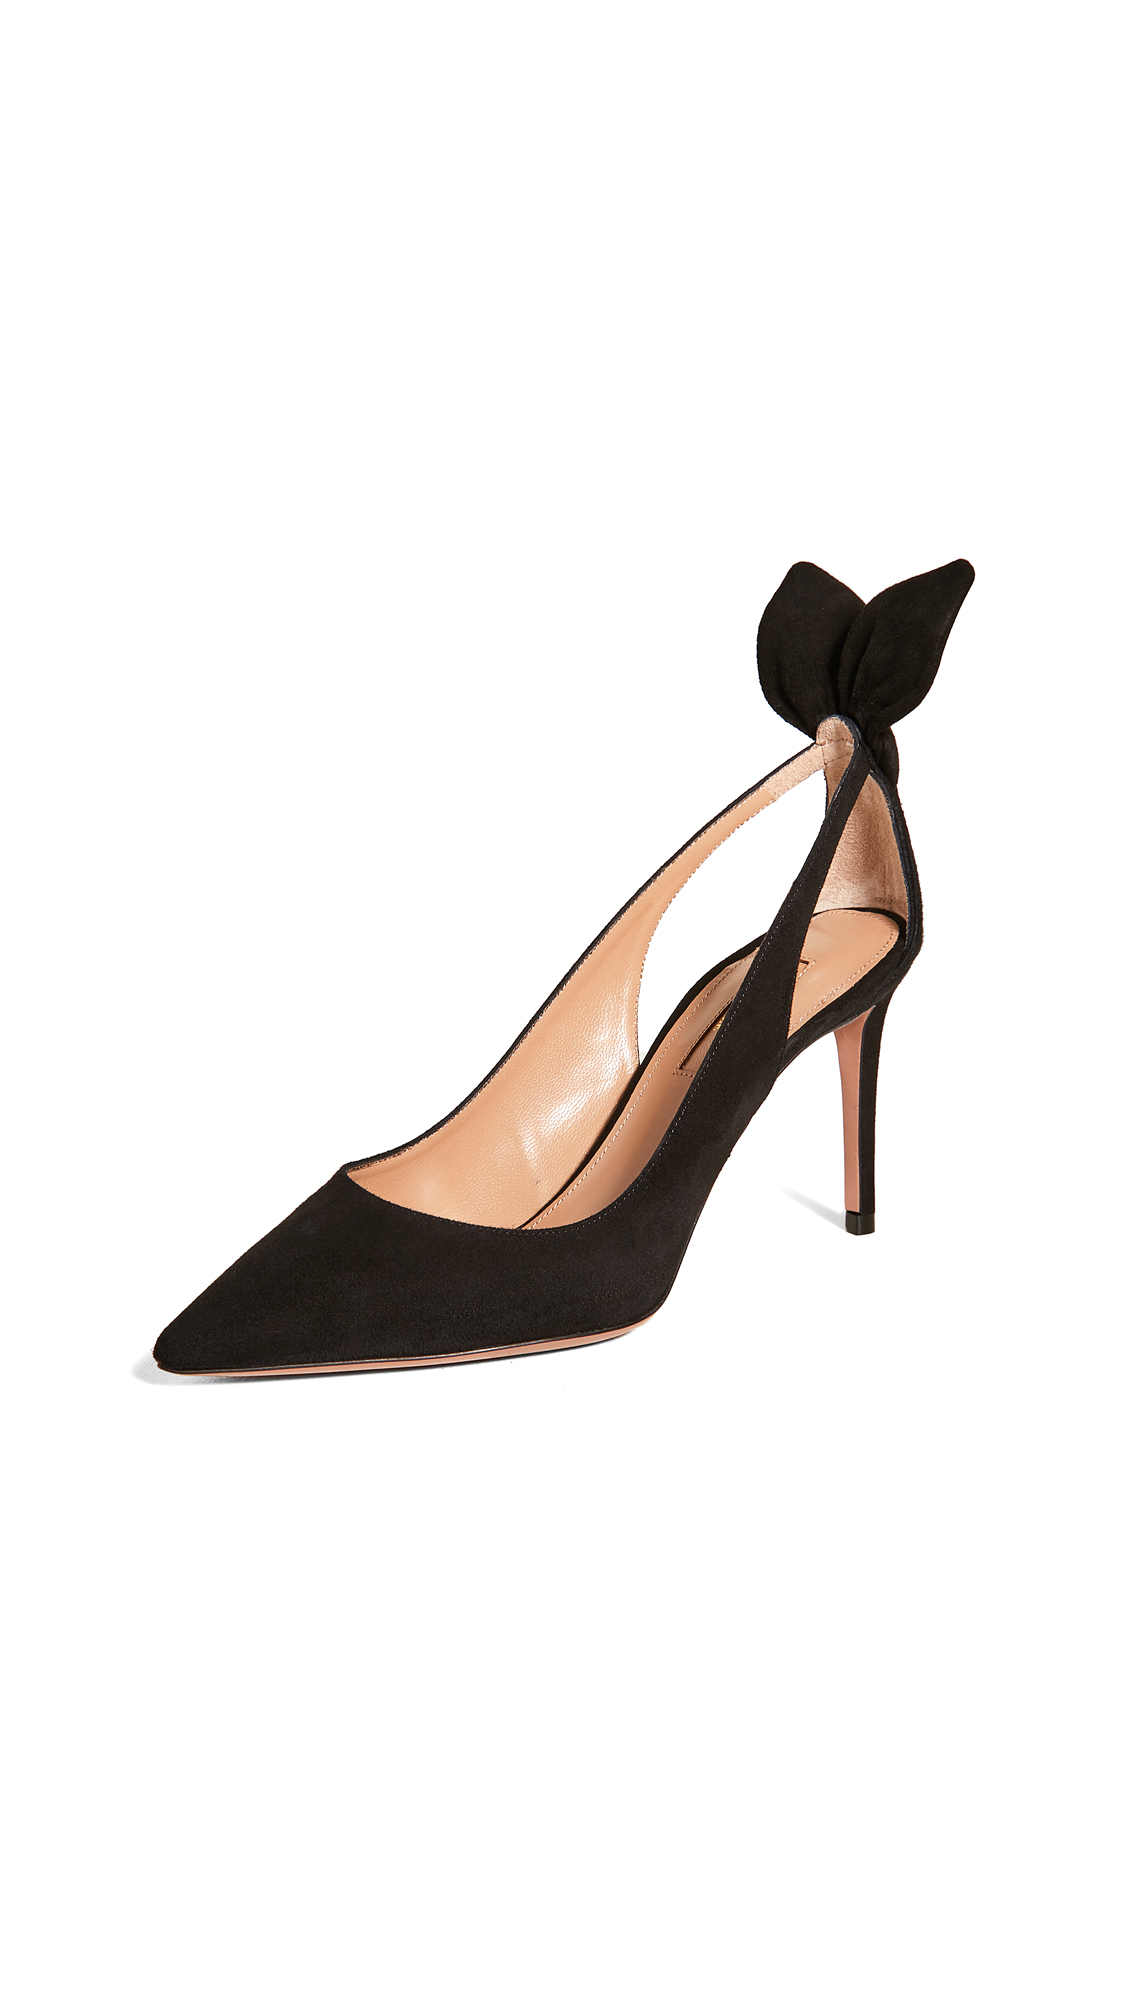 Buy Aquazzura Bow Tie Pumps 85mm online, shop Aquazzura